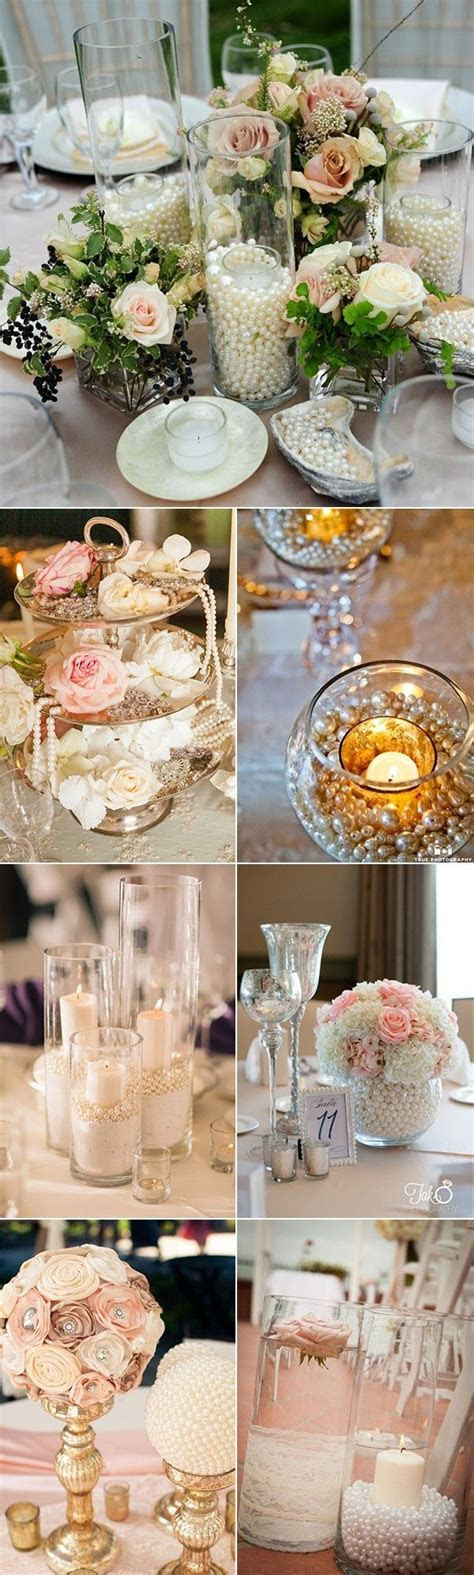 Best 25  Pearl Centerpiece ideas on Pinterest   Lace vase